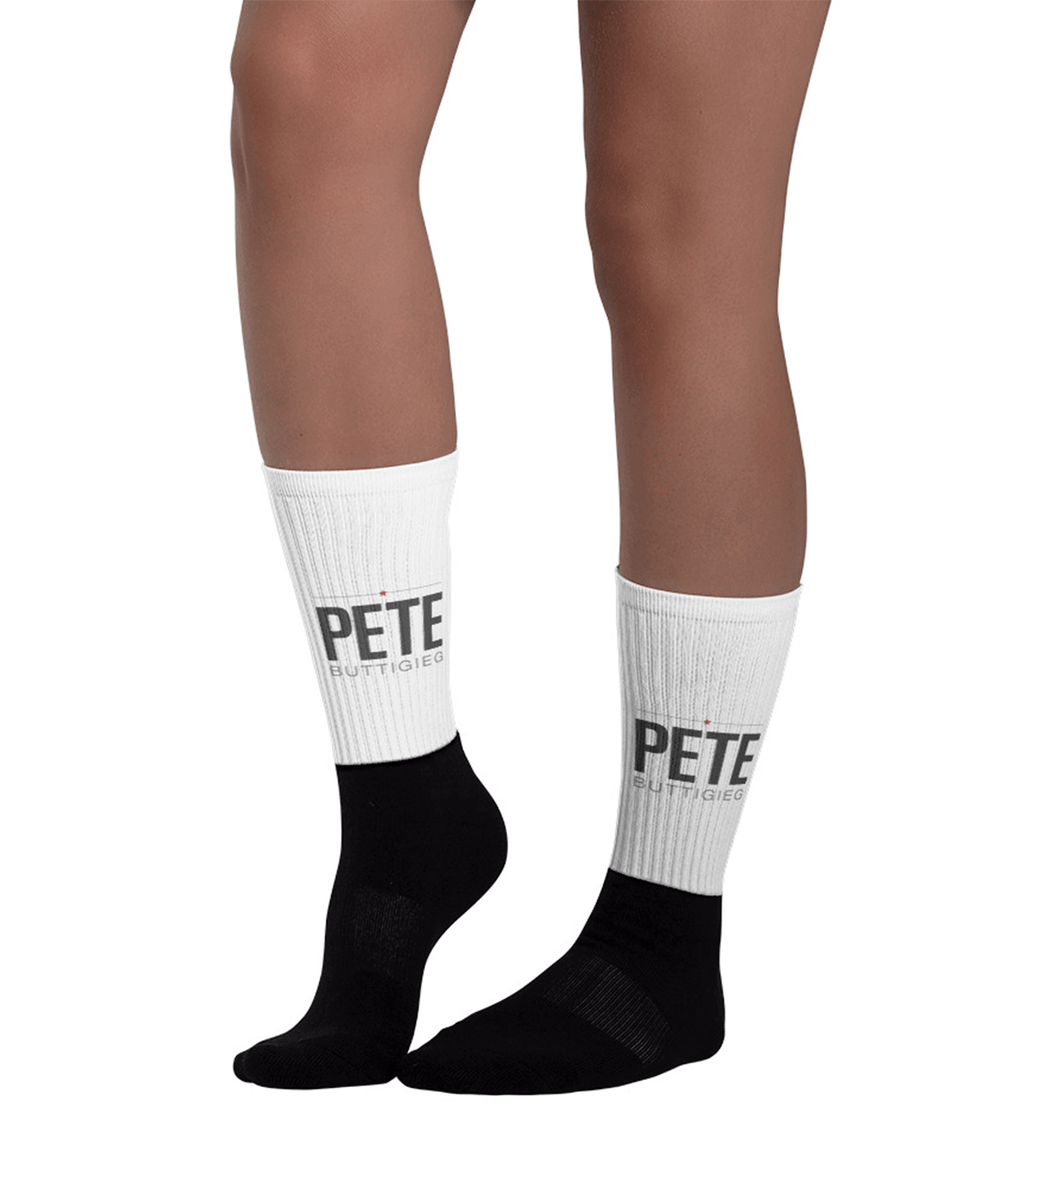 Pete Buttigieg Socks